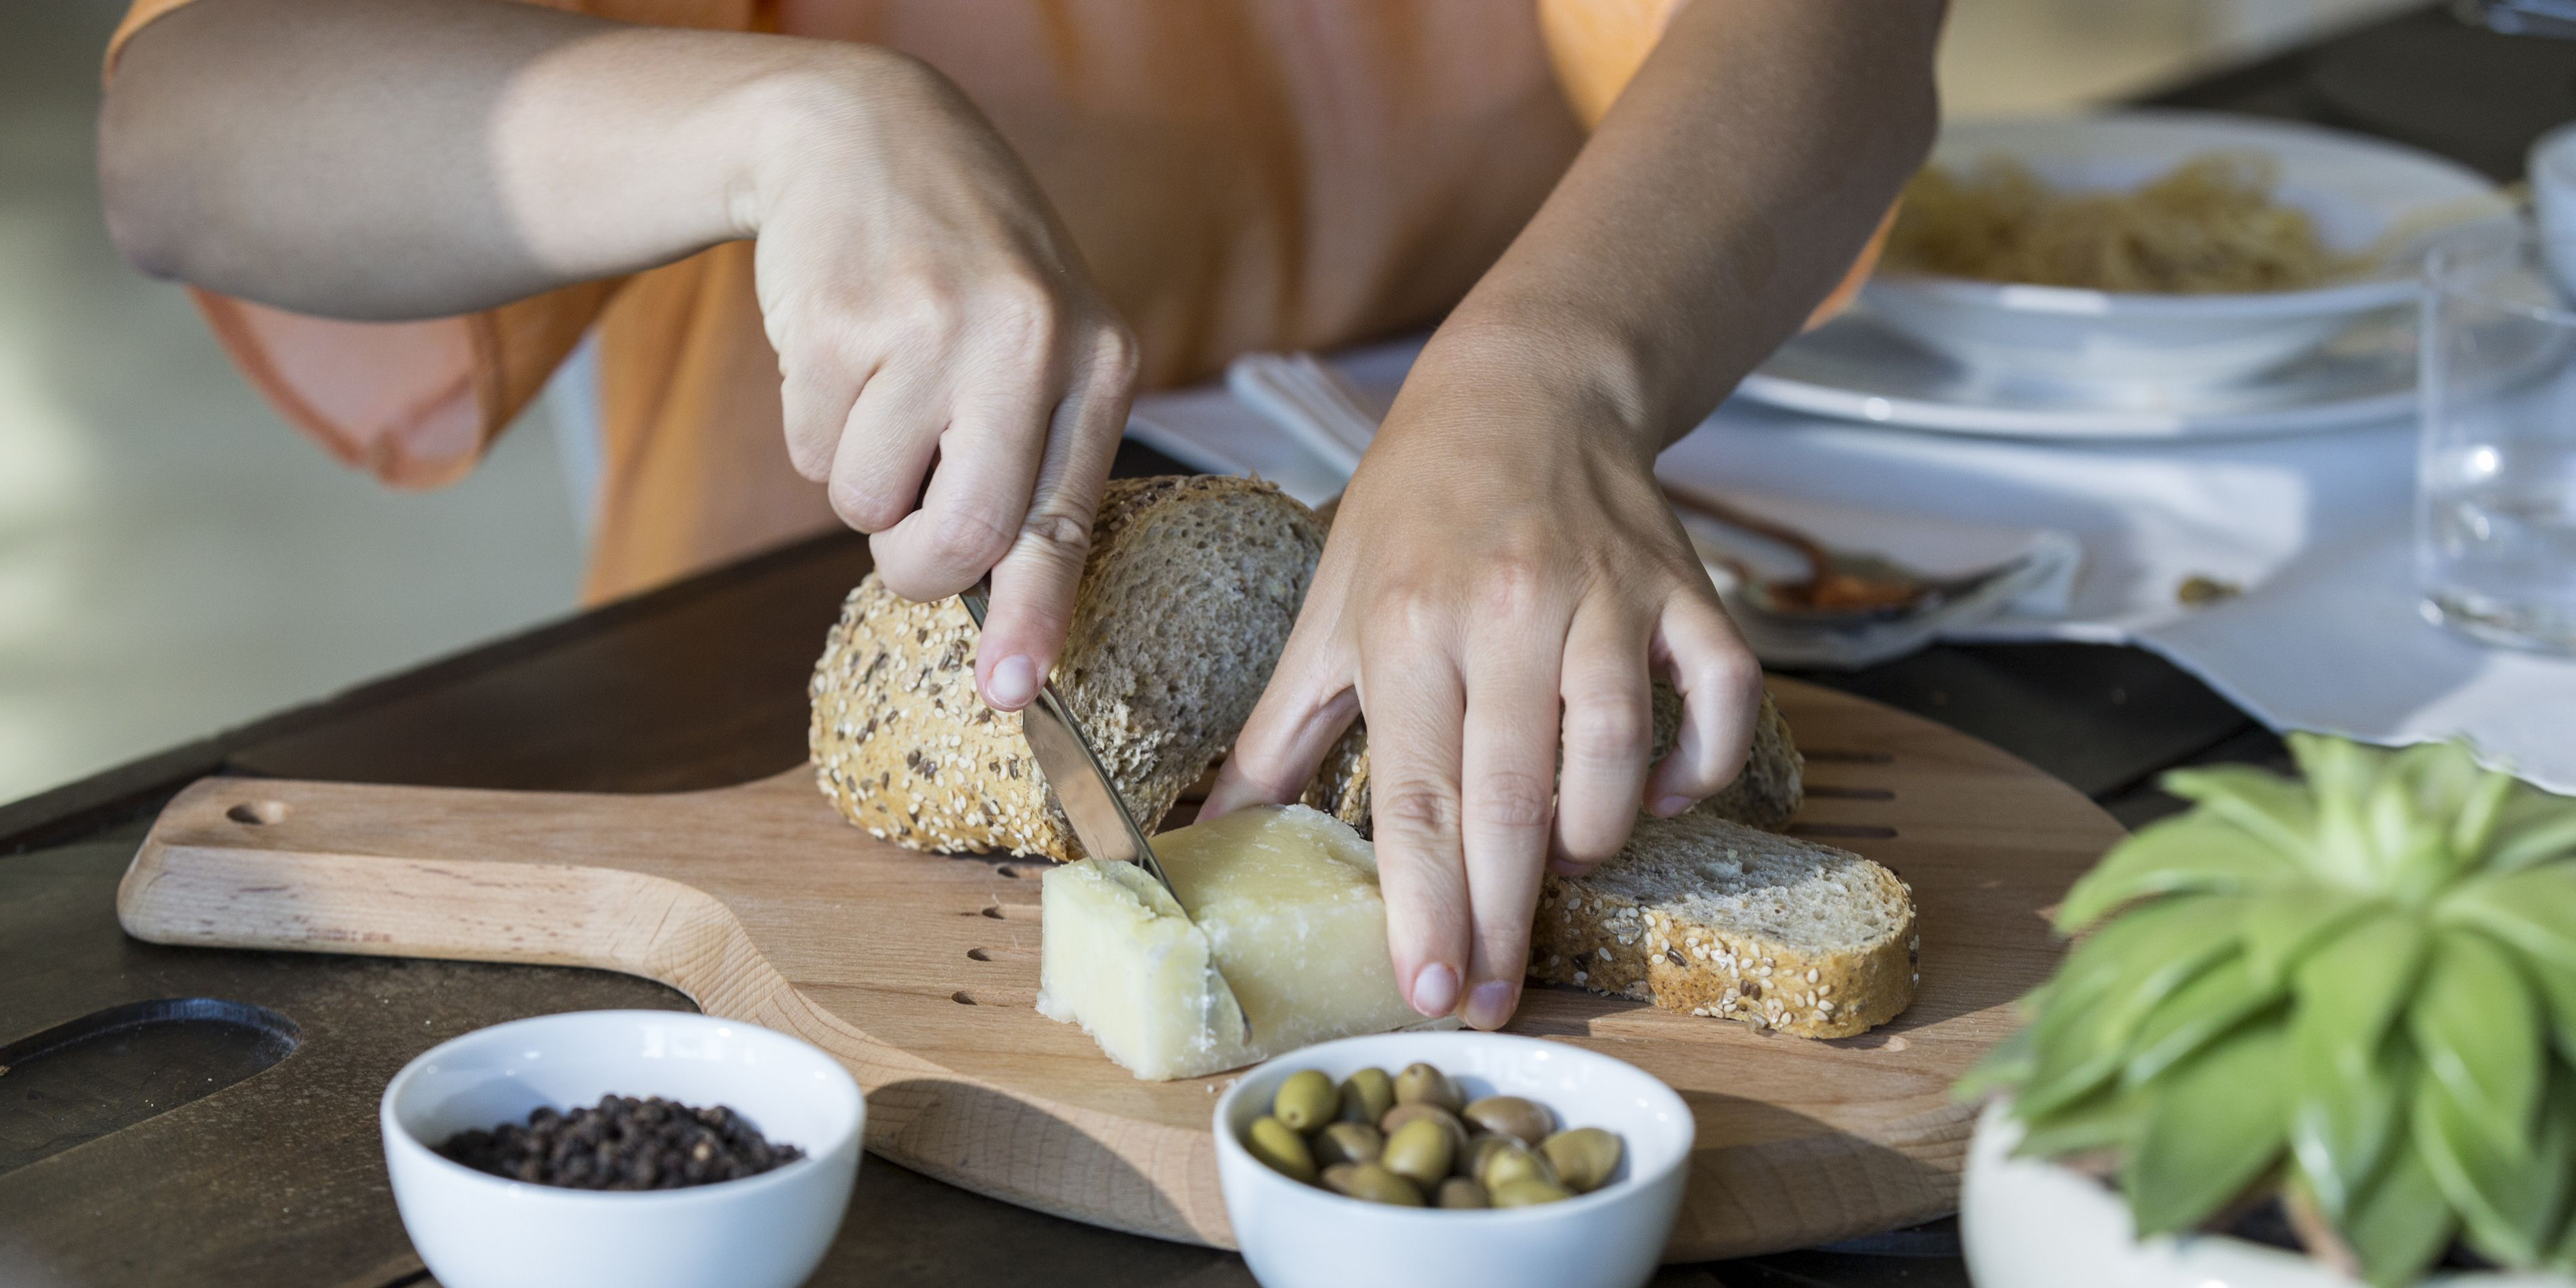 Woman cutting cheese and bread on chopping board